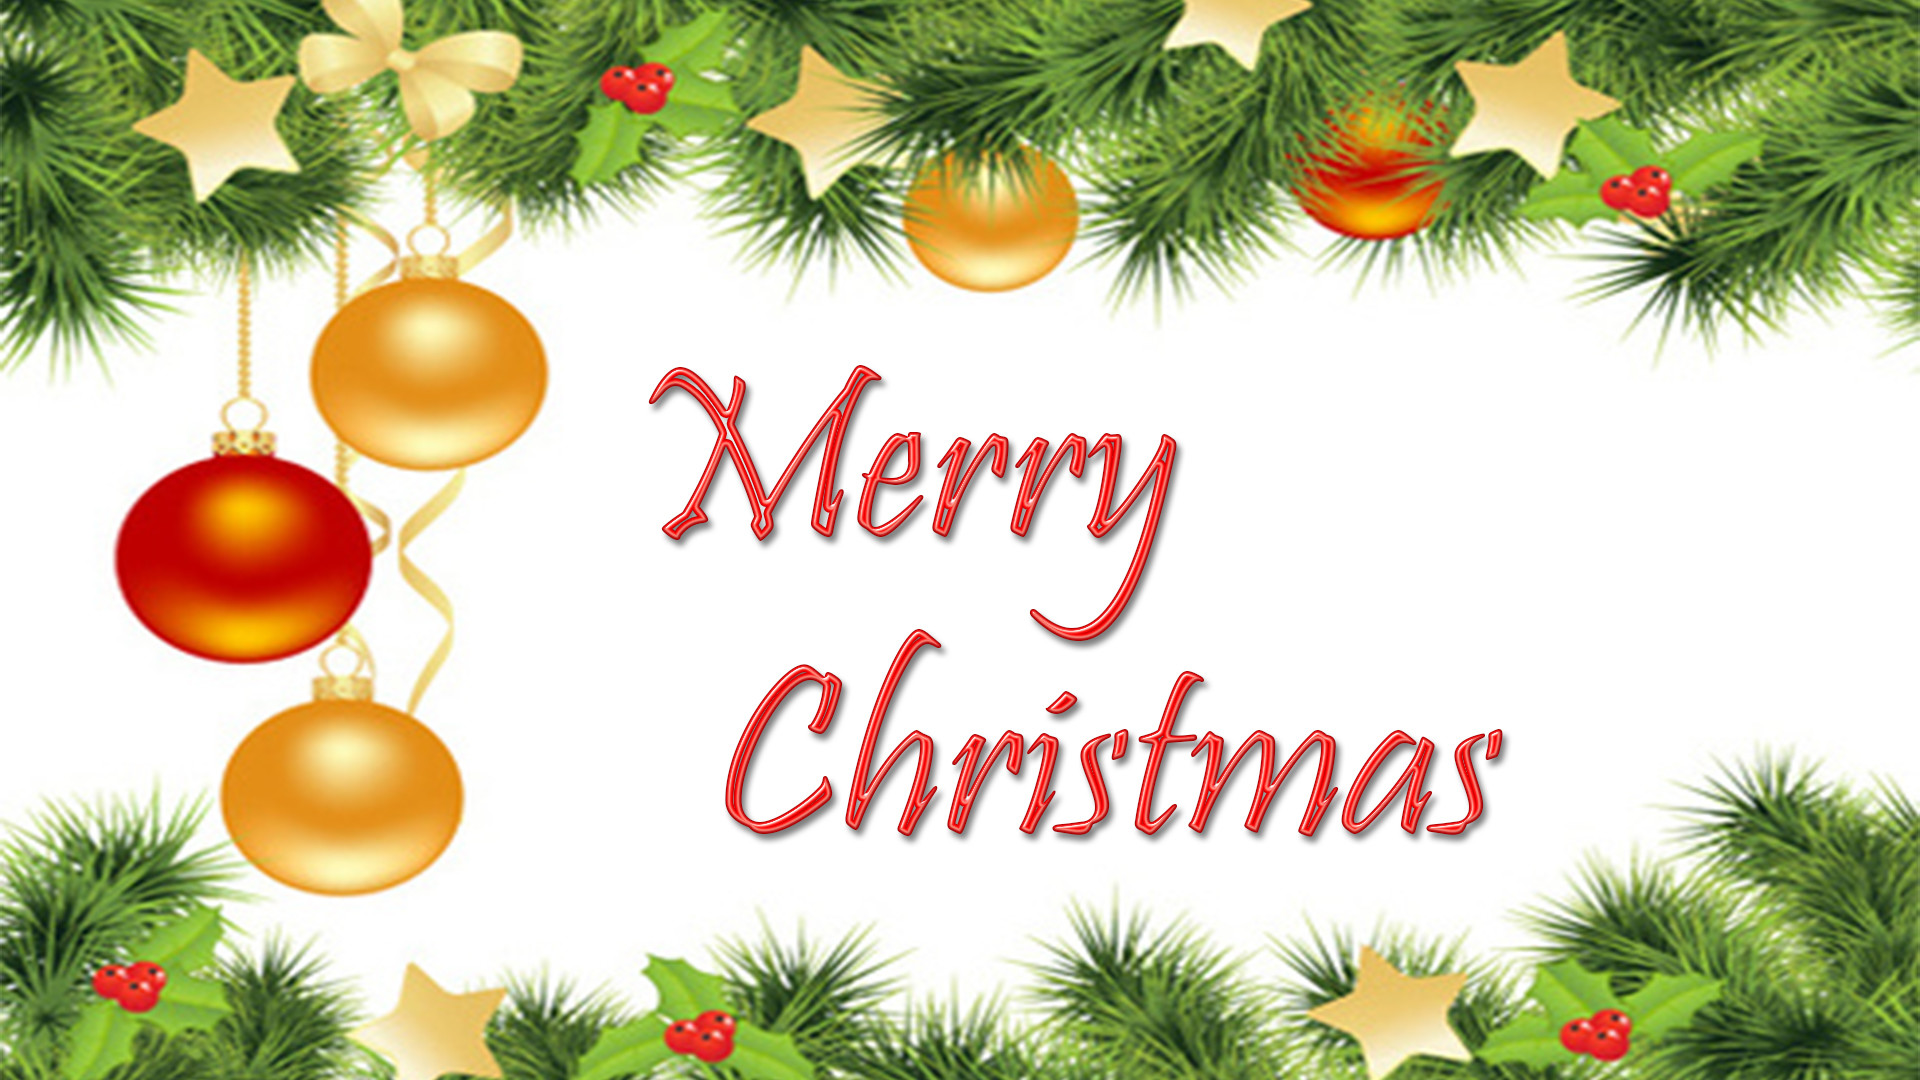 1920x1080 Latest Merry Christmas Images, Pictures & HD Wallpapers